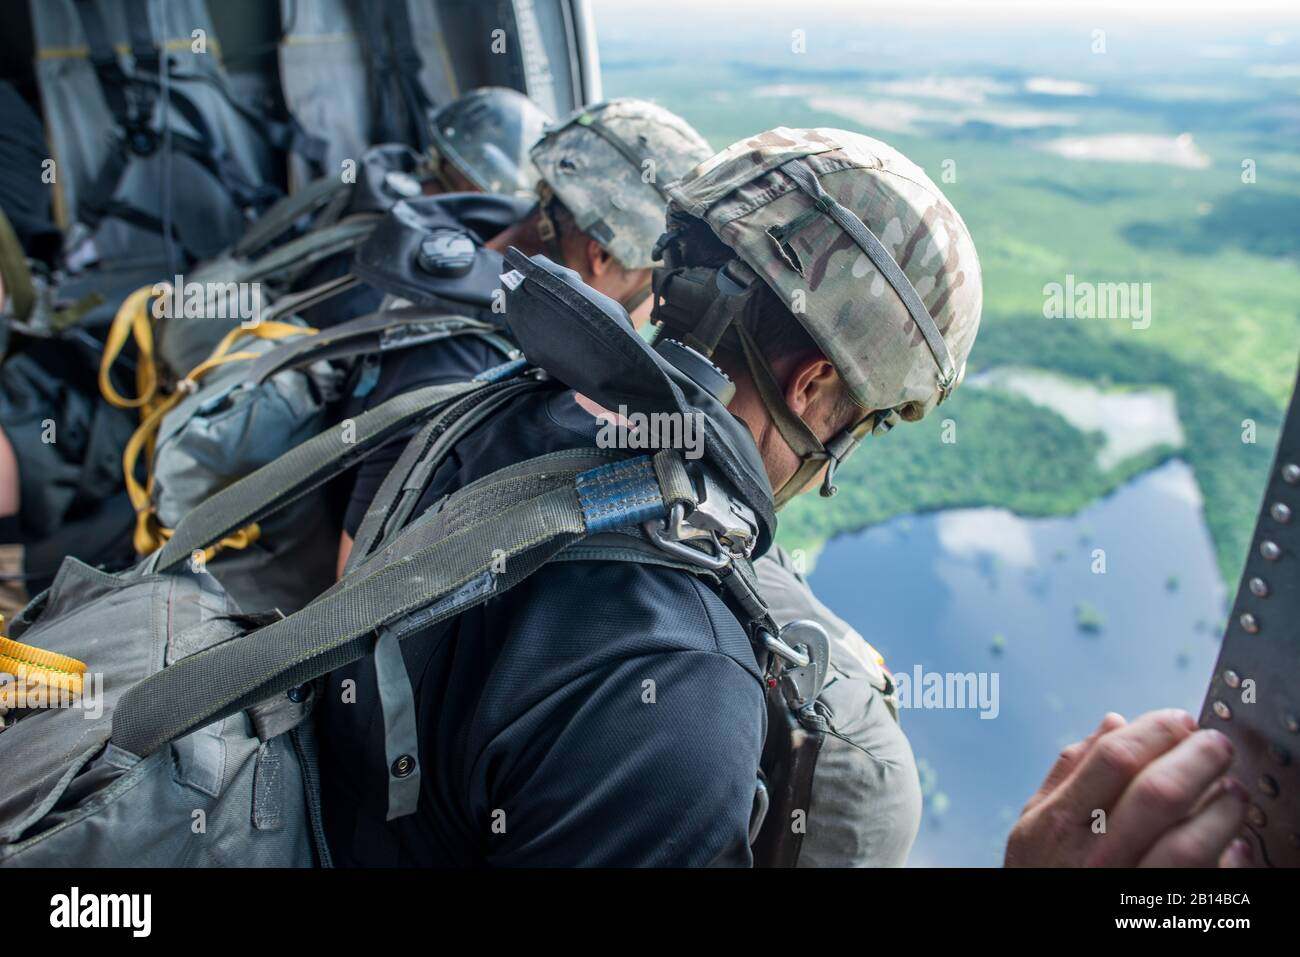 U.S. Soldiers assigned to the 6th Ranger Training Battalion, at Camp Rudder, Florida, conduct airborne water operations May 31, 2018 at Lake Jackson in Florala, Alabama. This training is a part of combat sustainment operations conducted to ensure Soldier readiness. (U.S. Army photo by Patrick A. Albright) Stock Photo